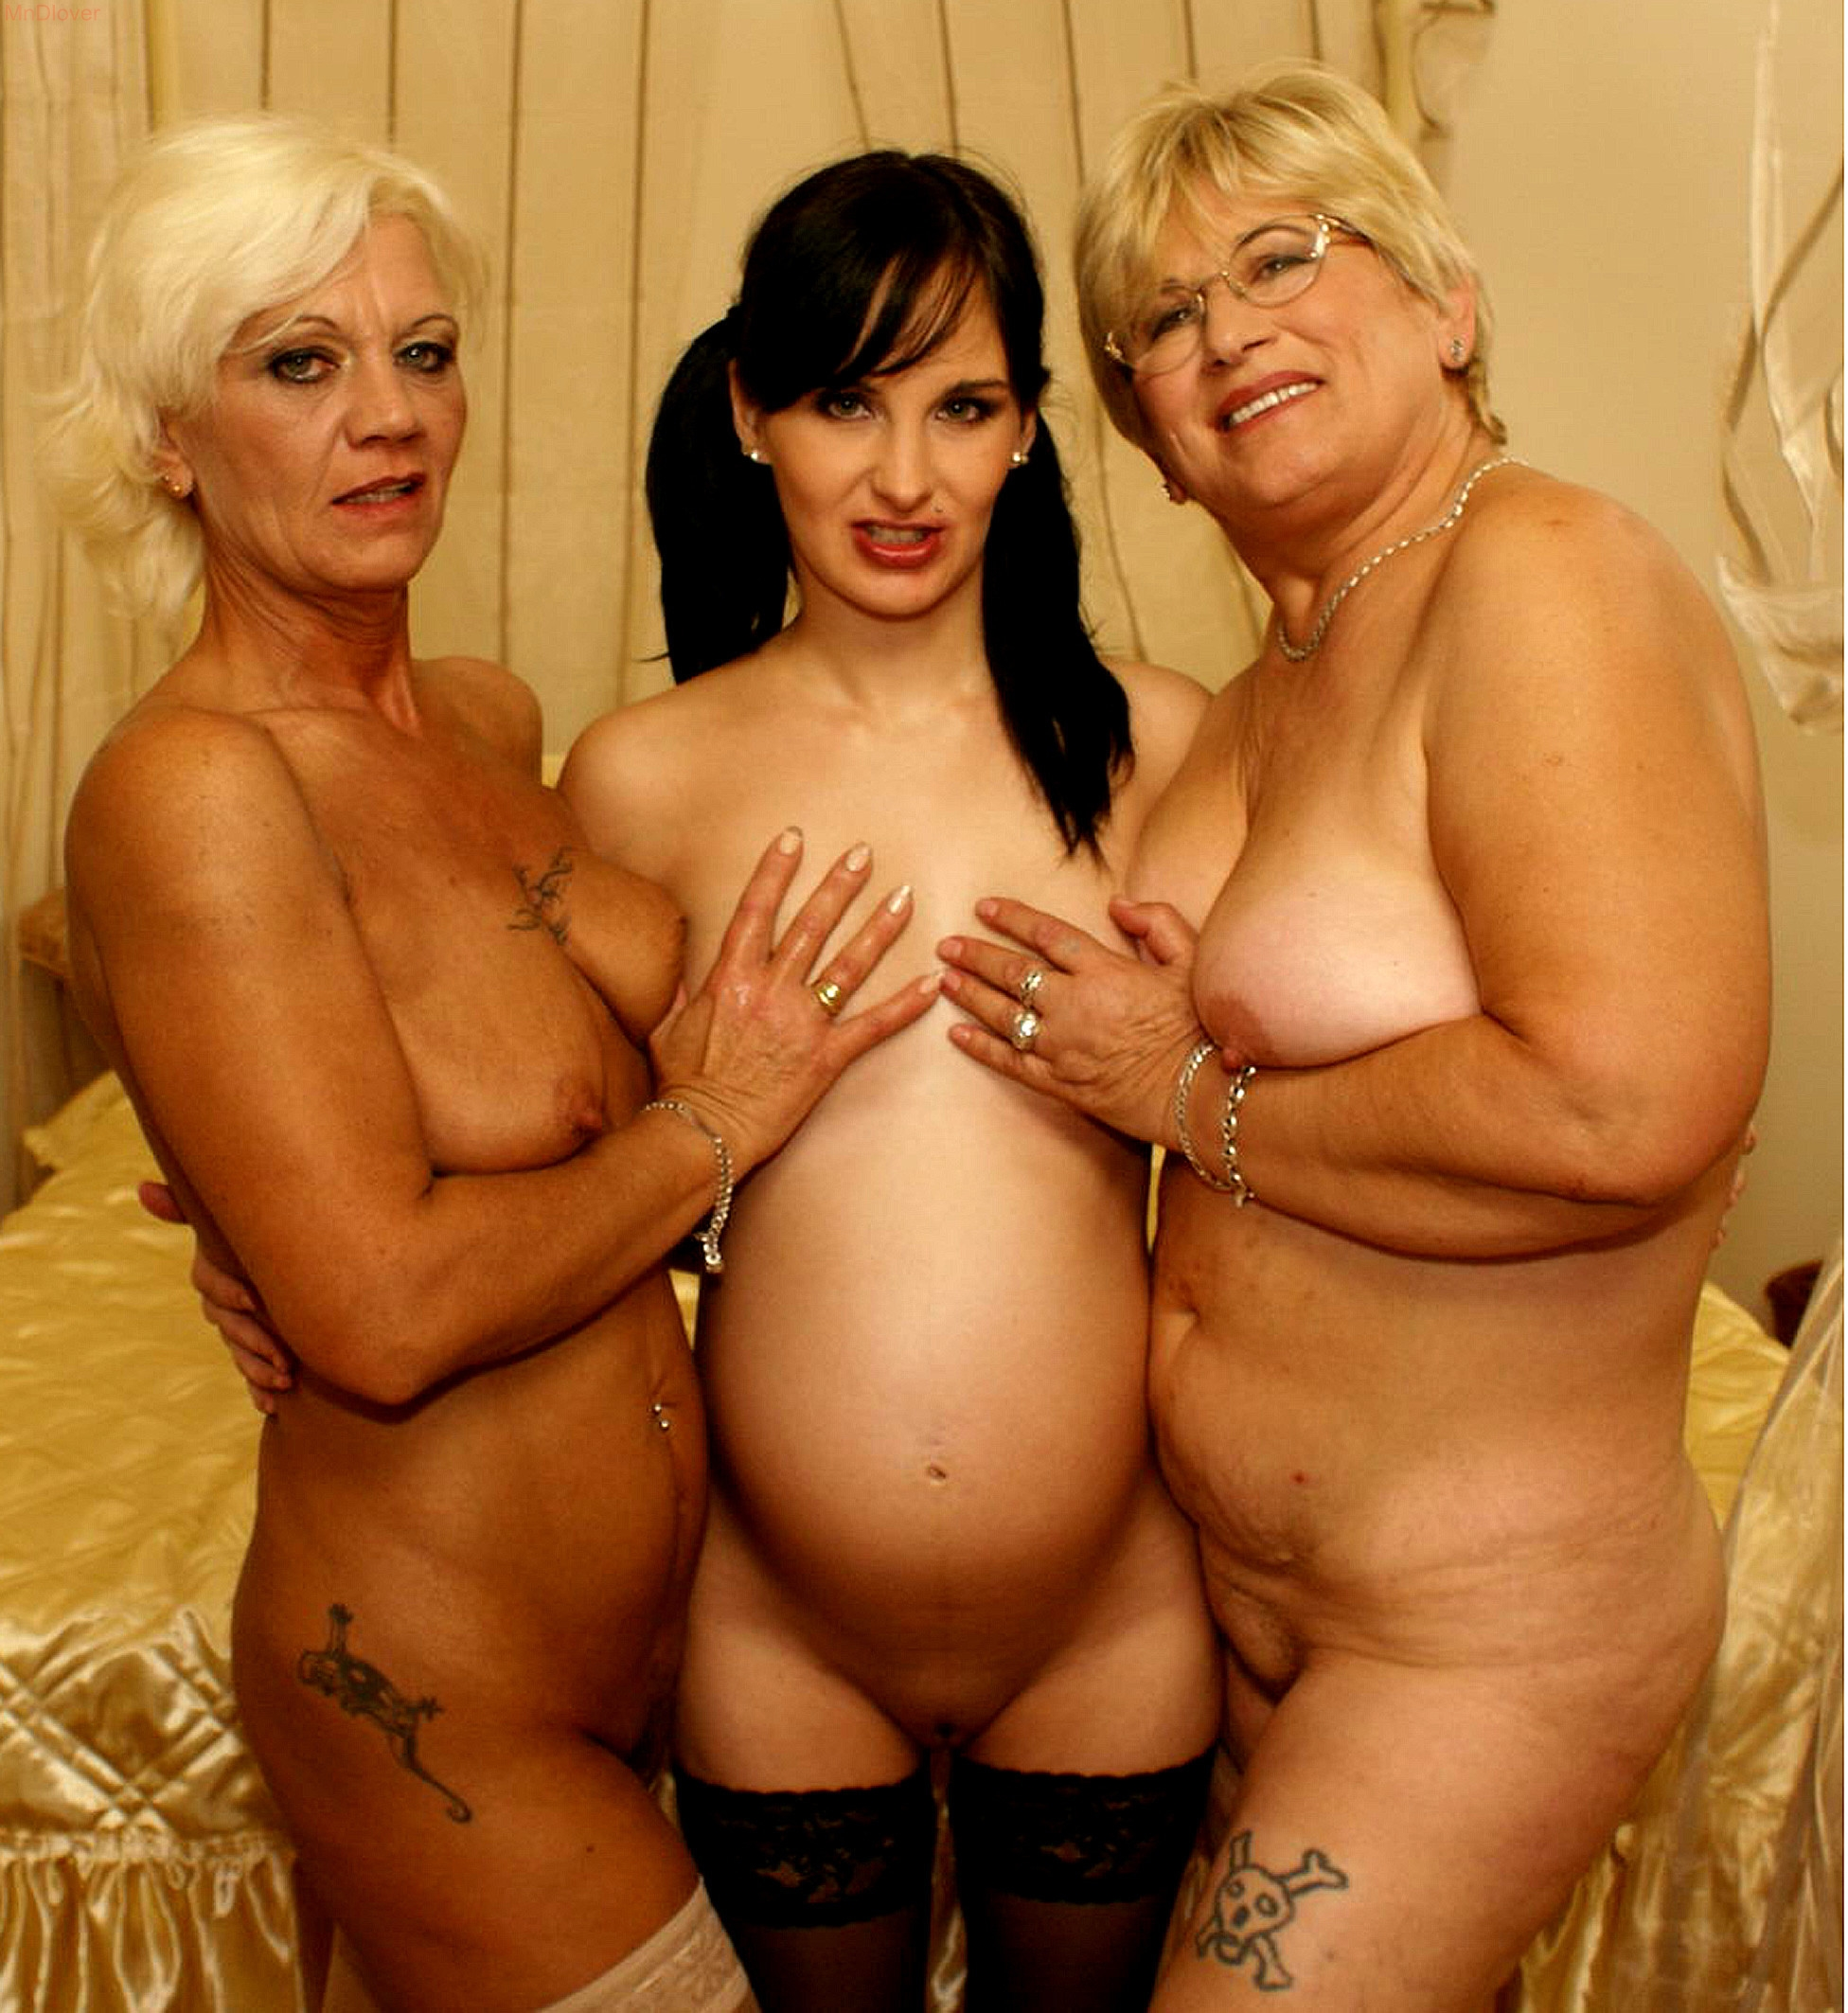 mmother daughter naked